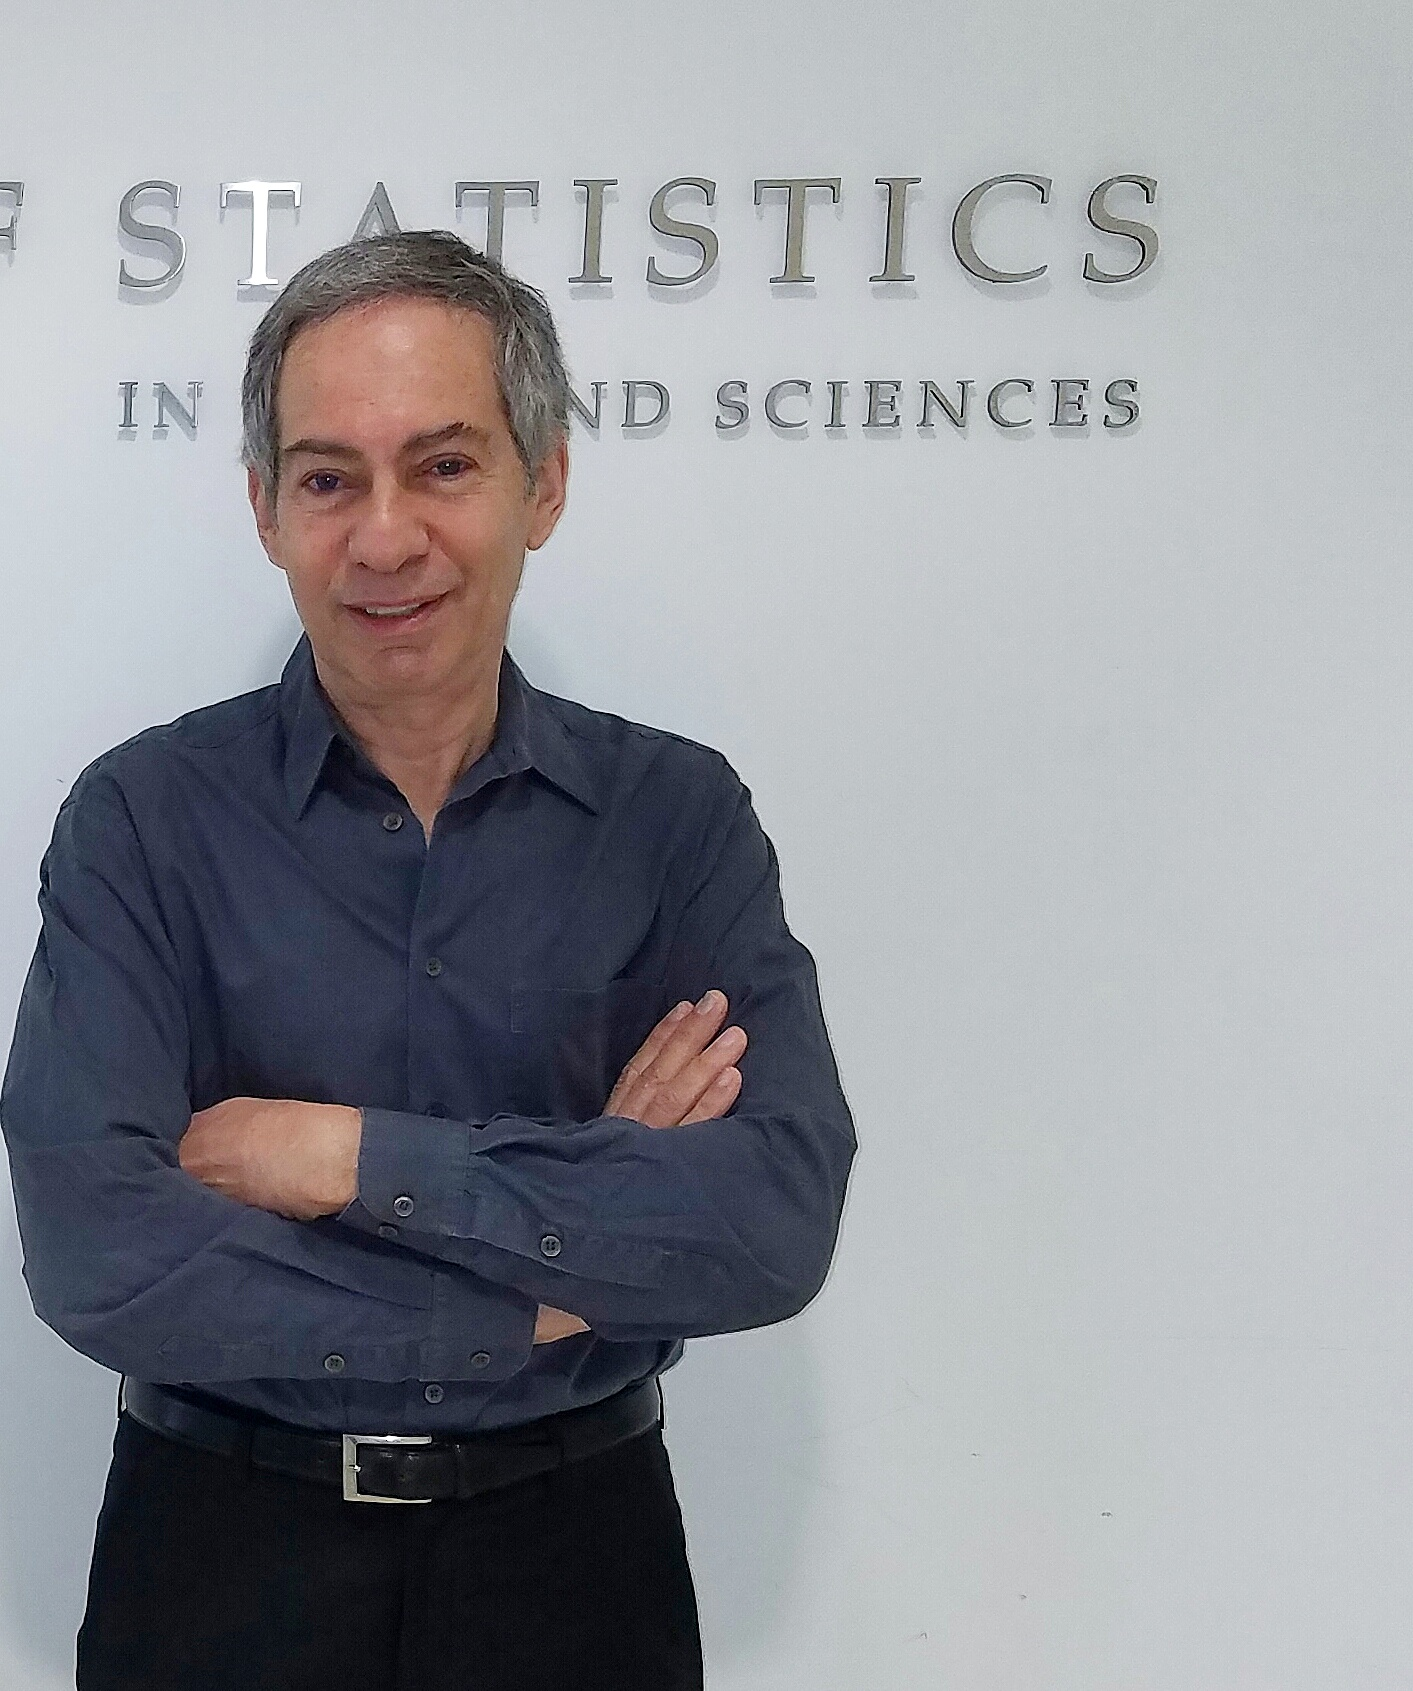 Professor Michael E. Sobel, 2017